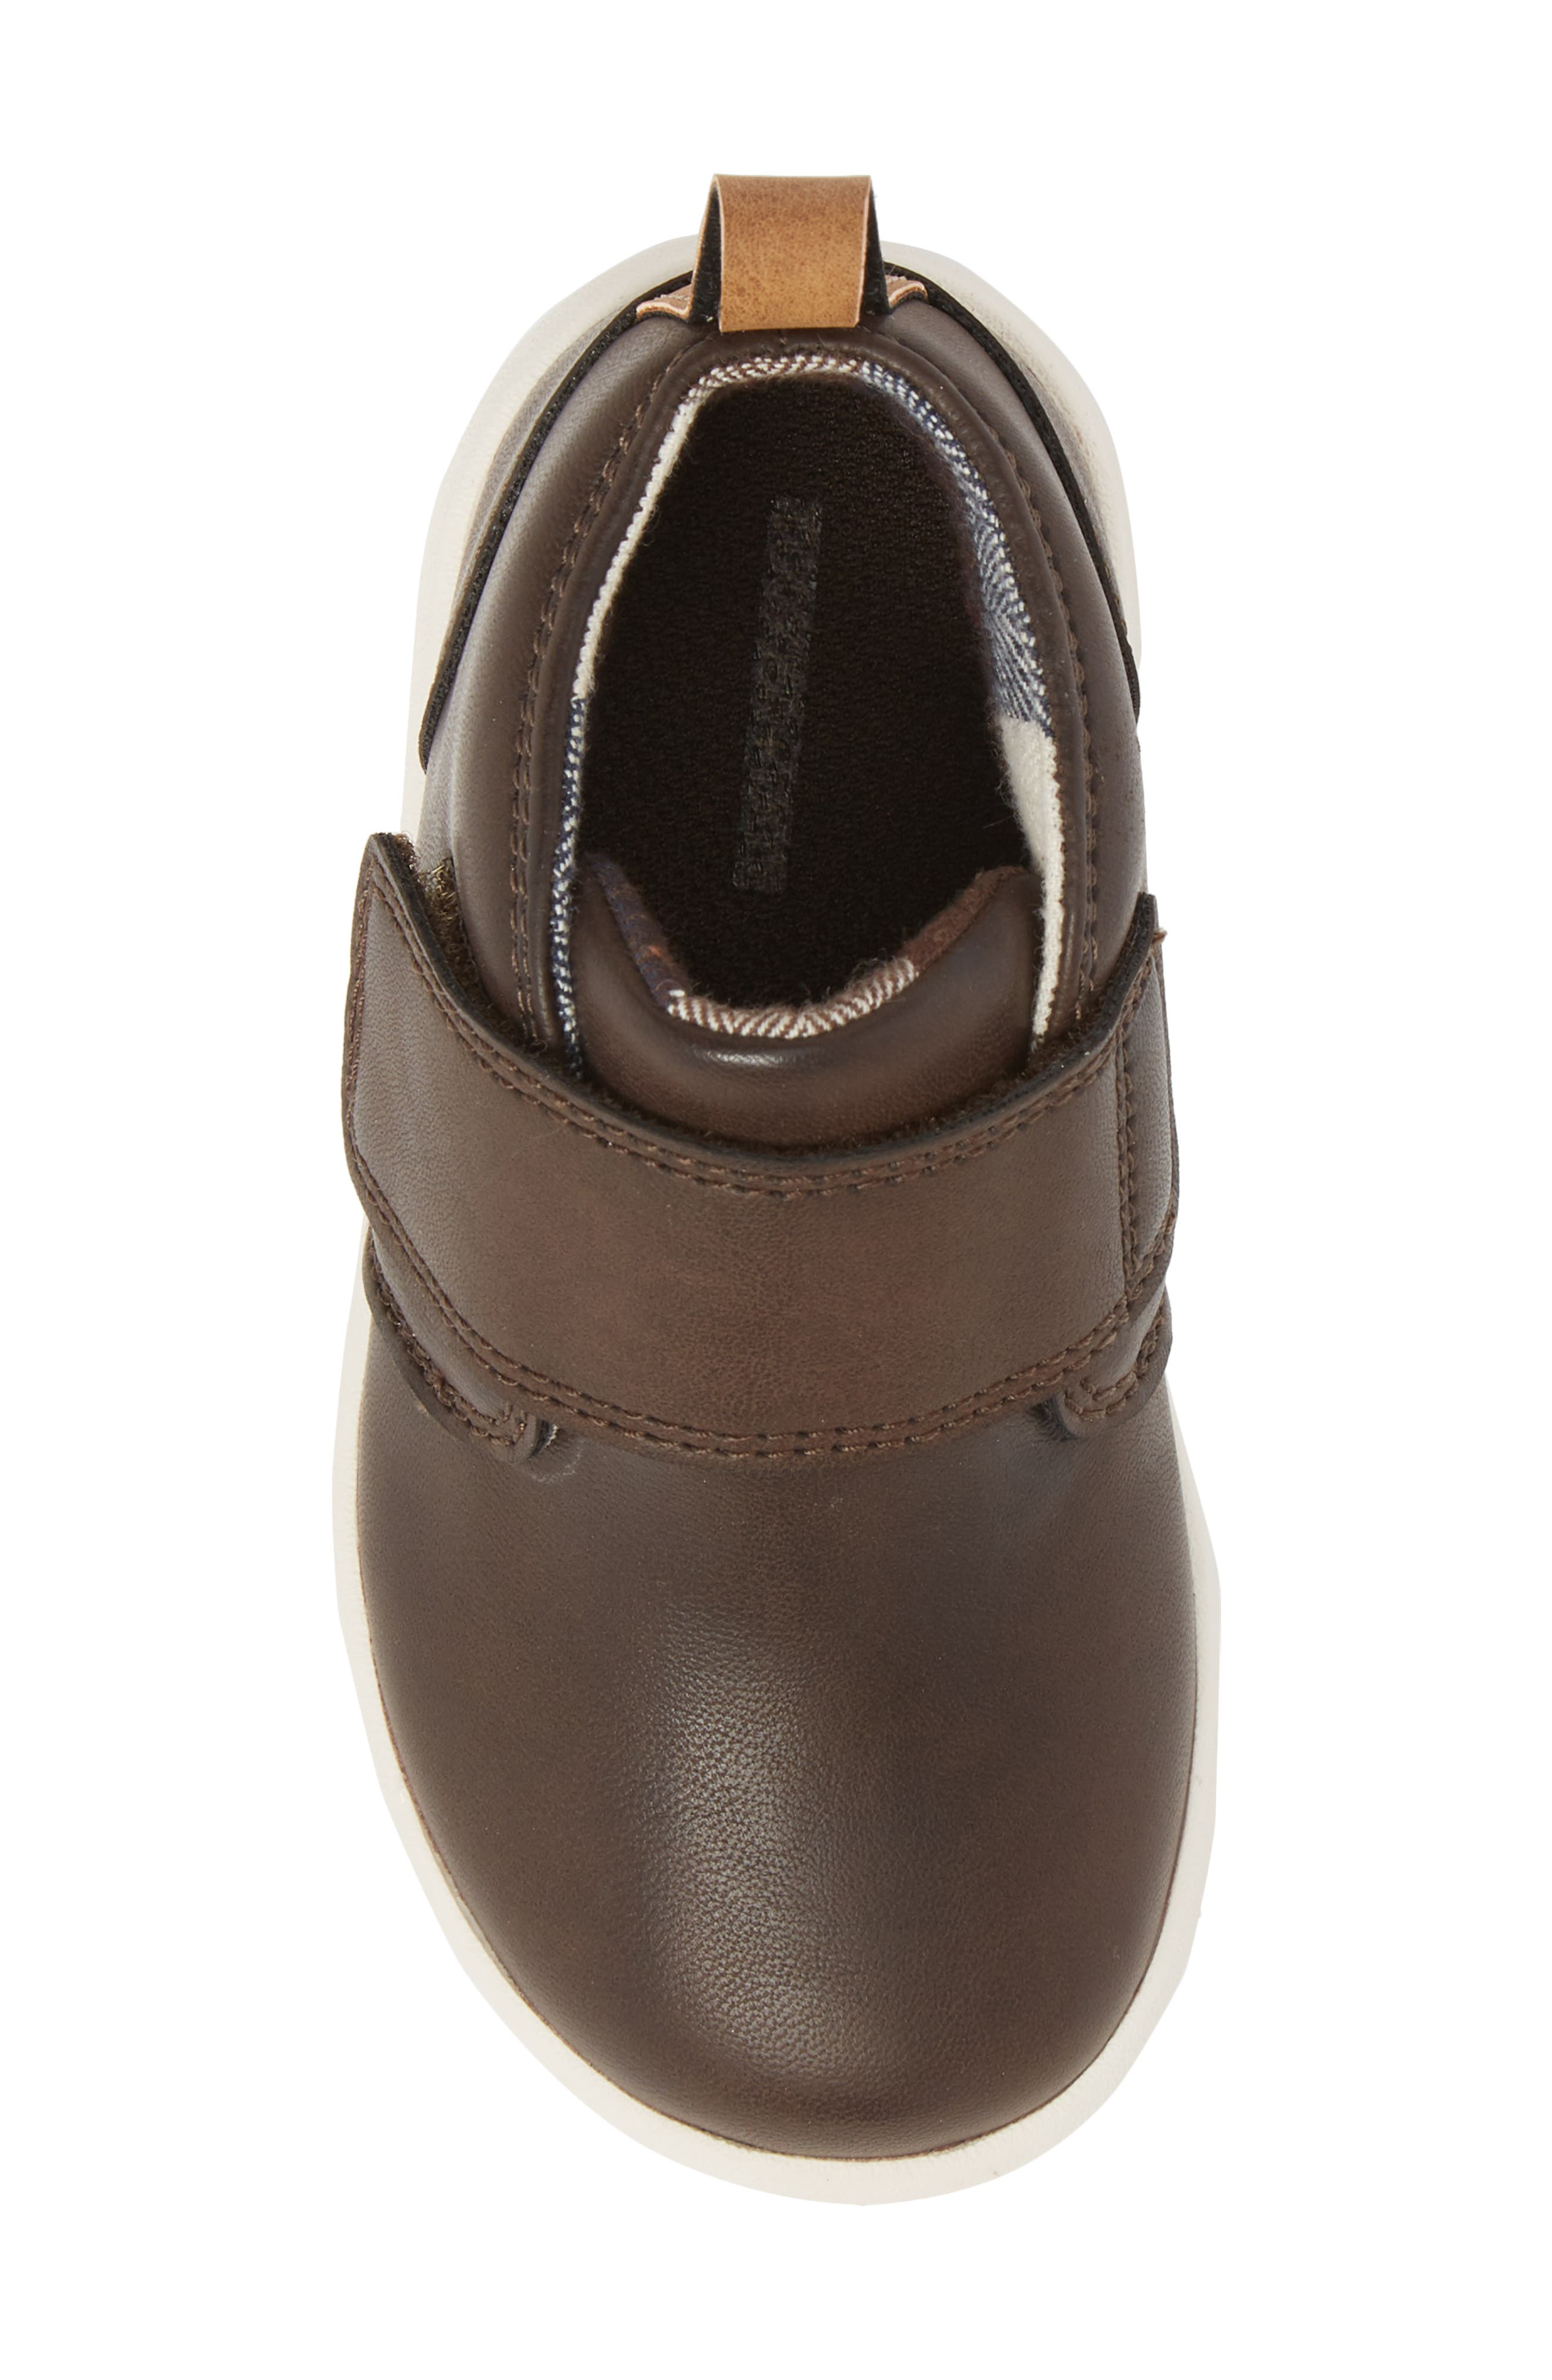 Oliver Low Bootie Sneaker,                             Alternate thumbnail 5, color,                             CHOCOLATE FAUX LEATHER